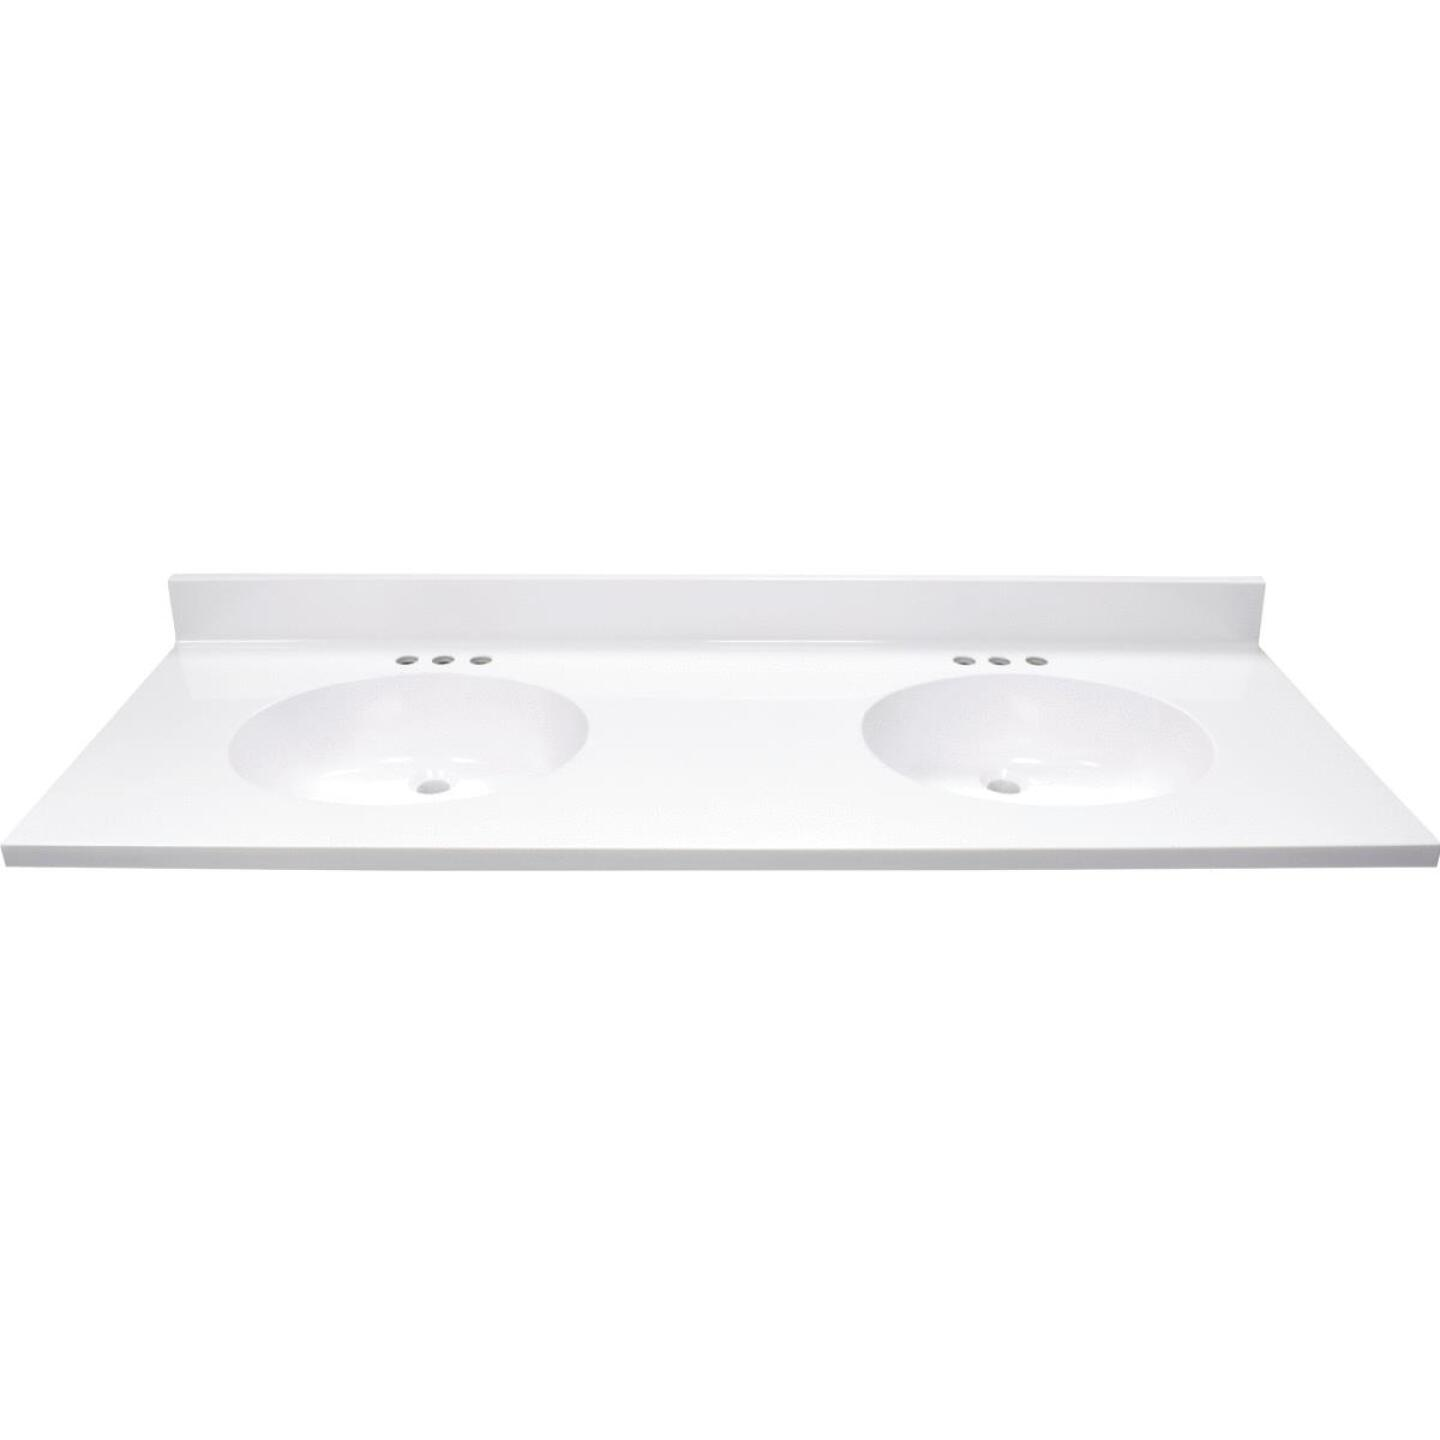 Modular Vanity Tops 61 In. W x 22 In. D Solid White Cultured Marble Vanity Top with Double Oval Bowl Image 2